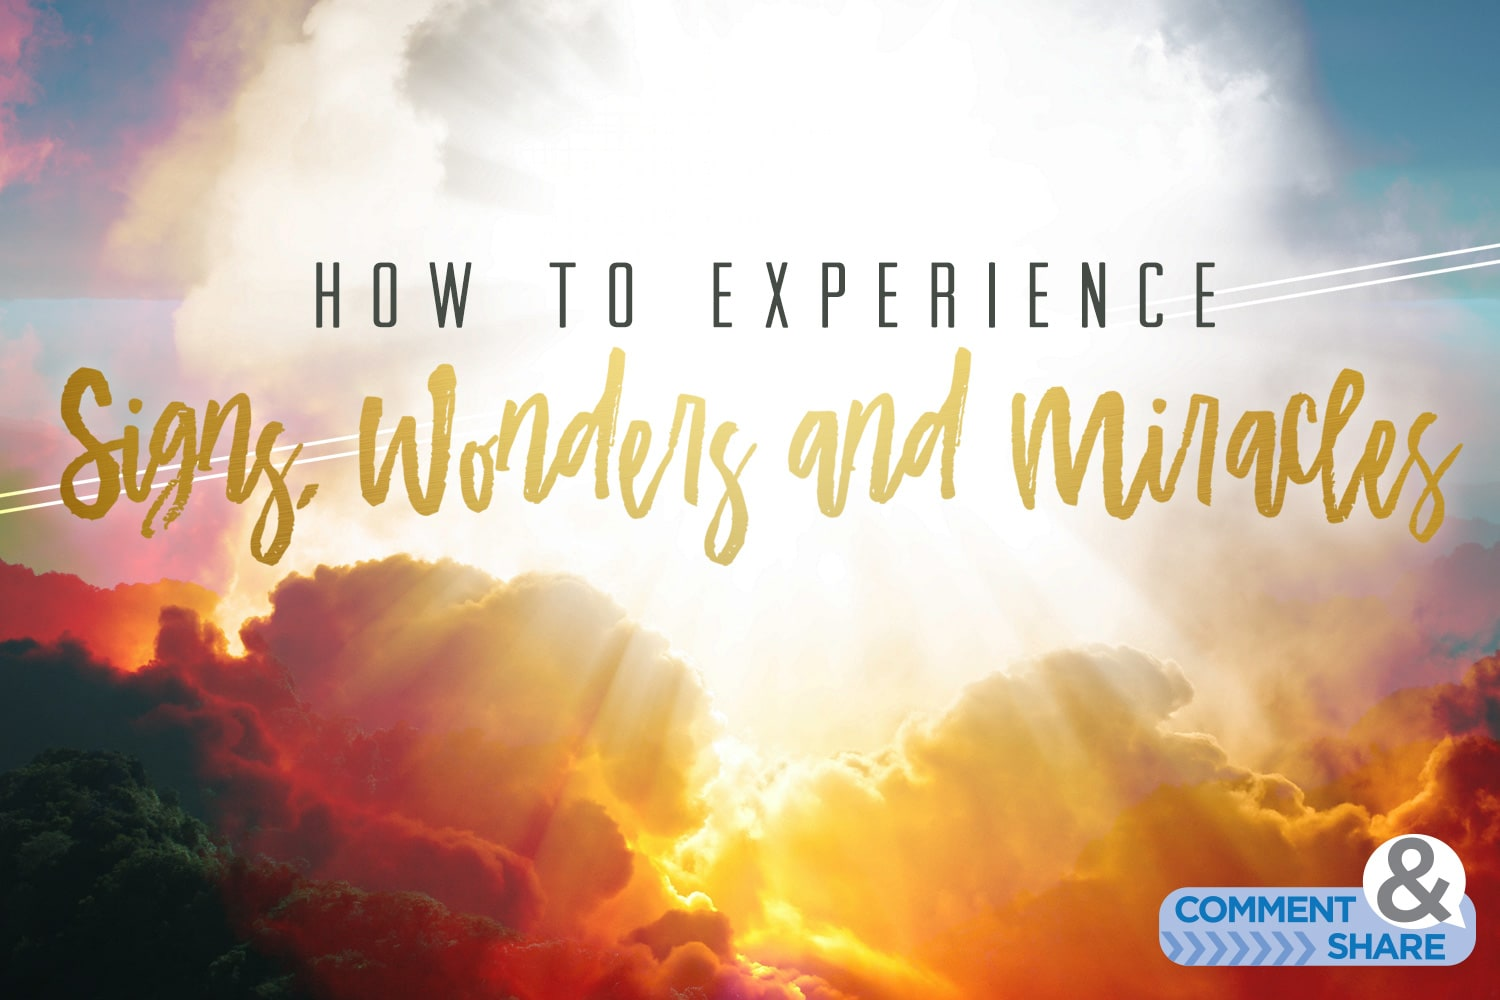 How to Experience Signs, Wonders and Miracles - Kenneth Copeland